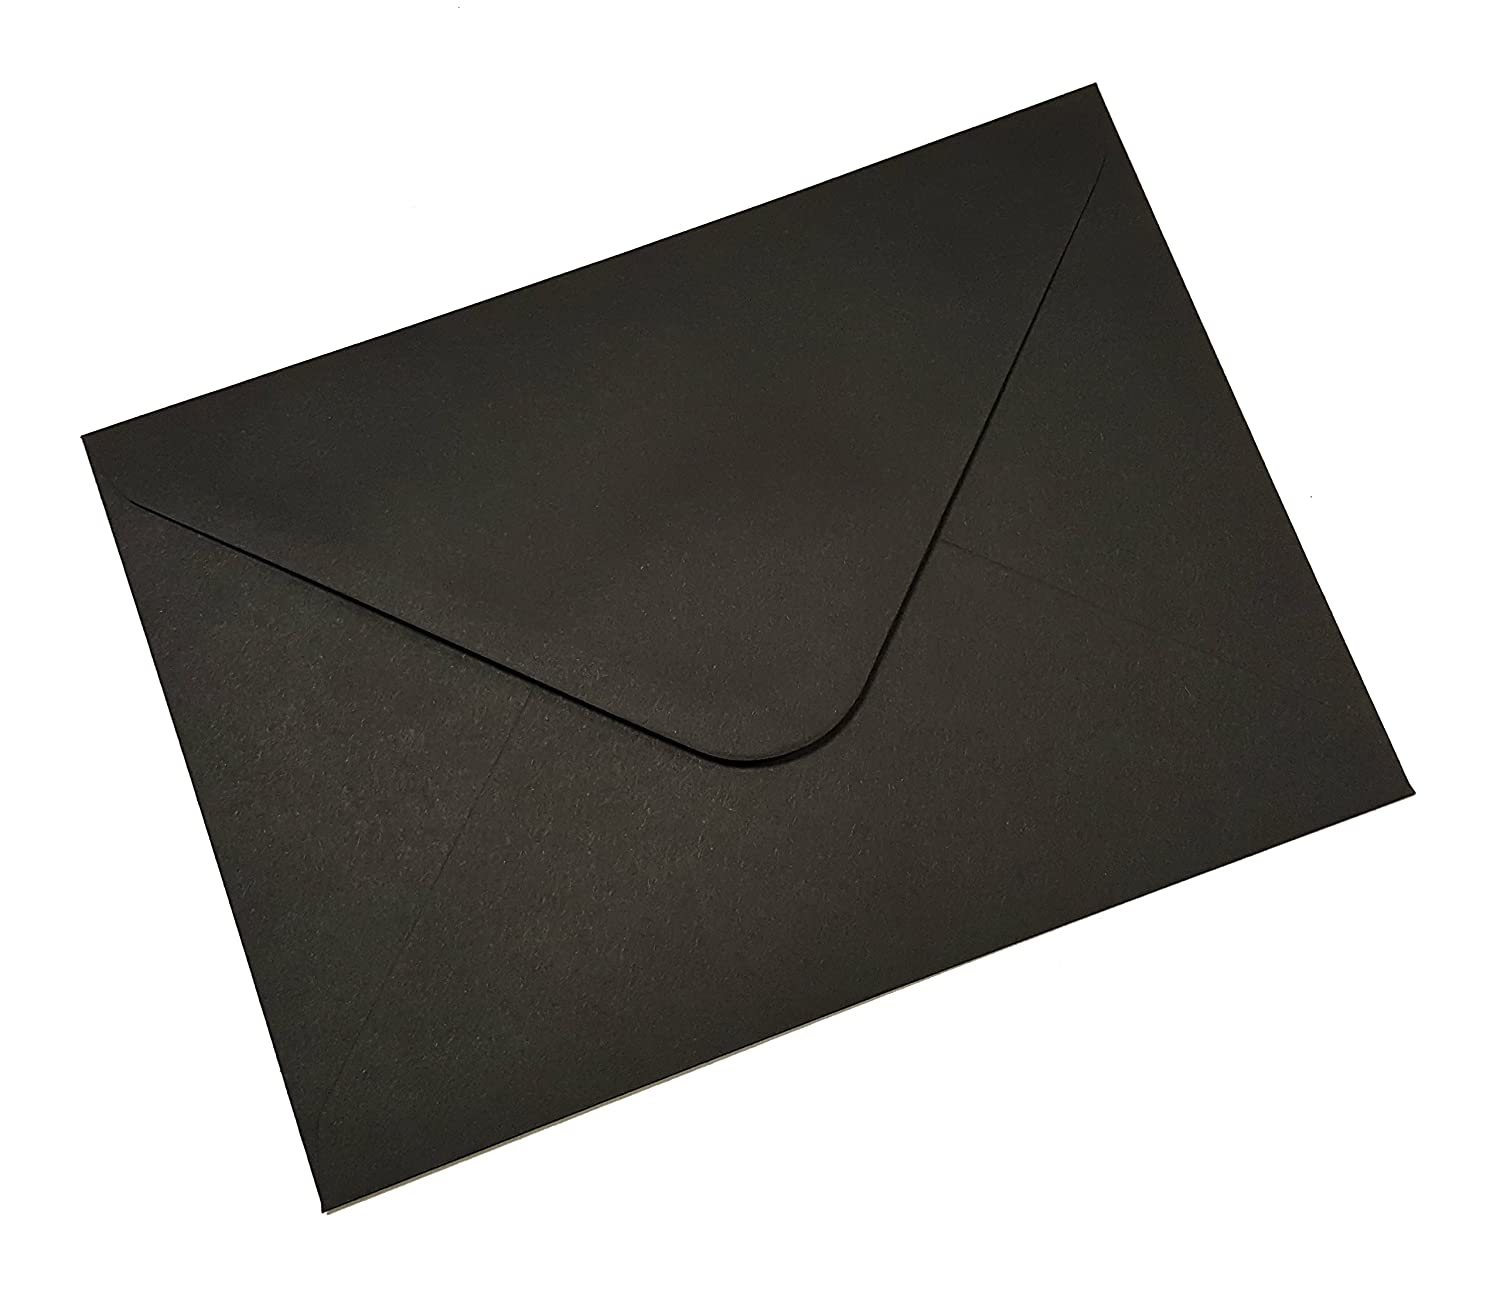 10 DL (110x220mm) Black Coloured Envelopes - Packed by the CandyRushTM Charity - (approx. 4x8.5) For Greetings Cards Crafts & Party Invitations Acceptable Enterprises